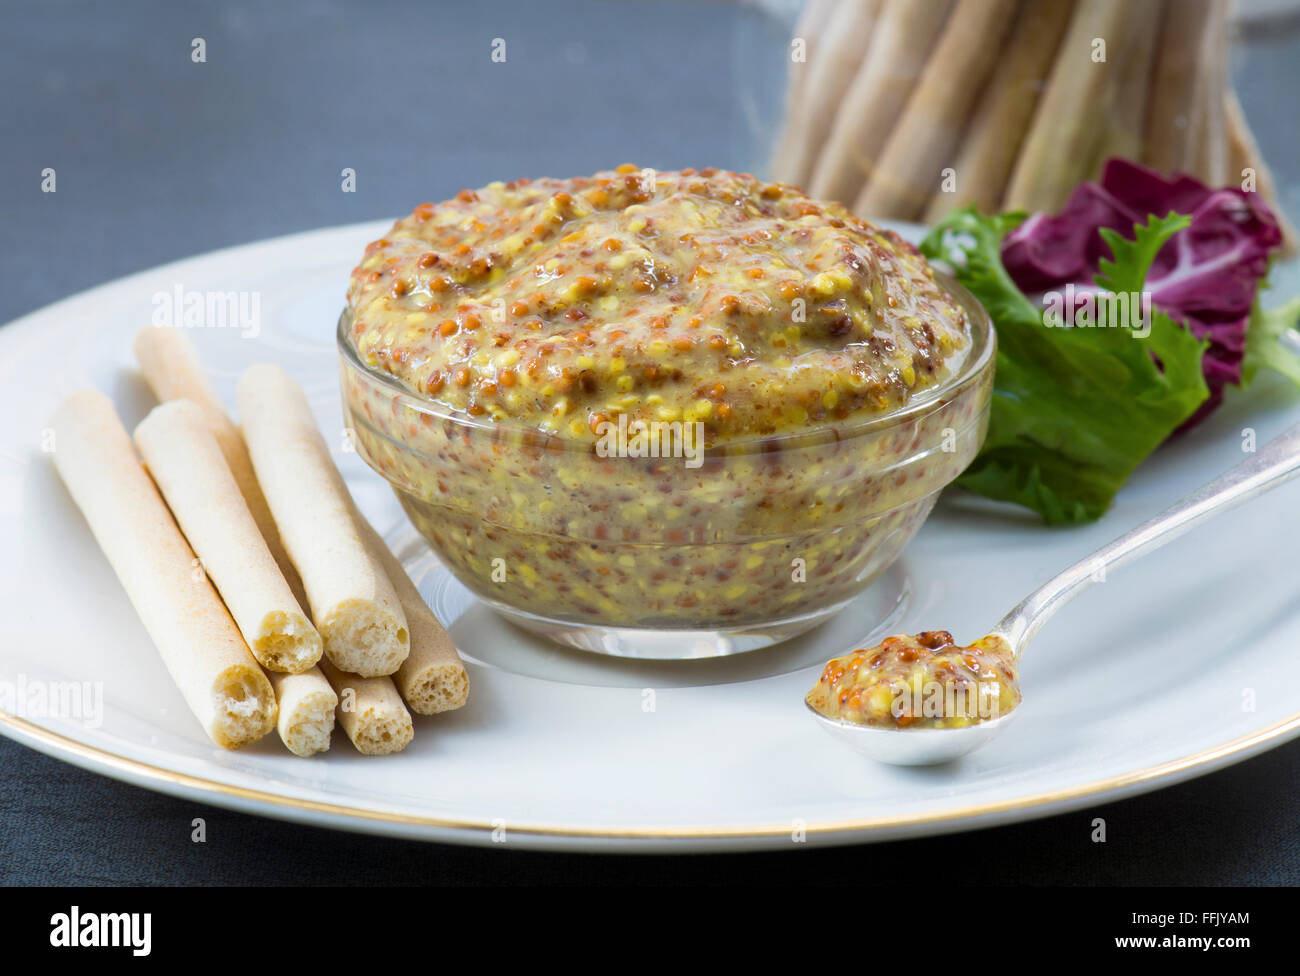 Mustard in a glass dish with a silver spoon on a white bone china plate, with bread stick and salad. Shot with a - Stock Image